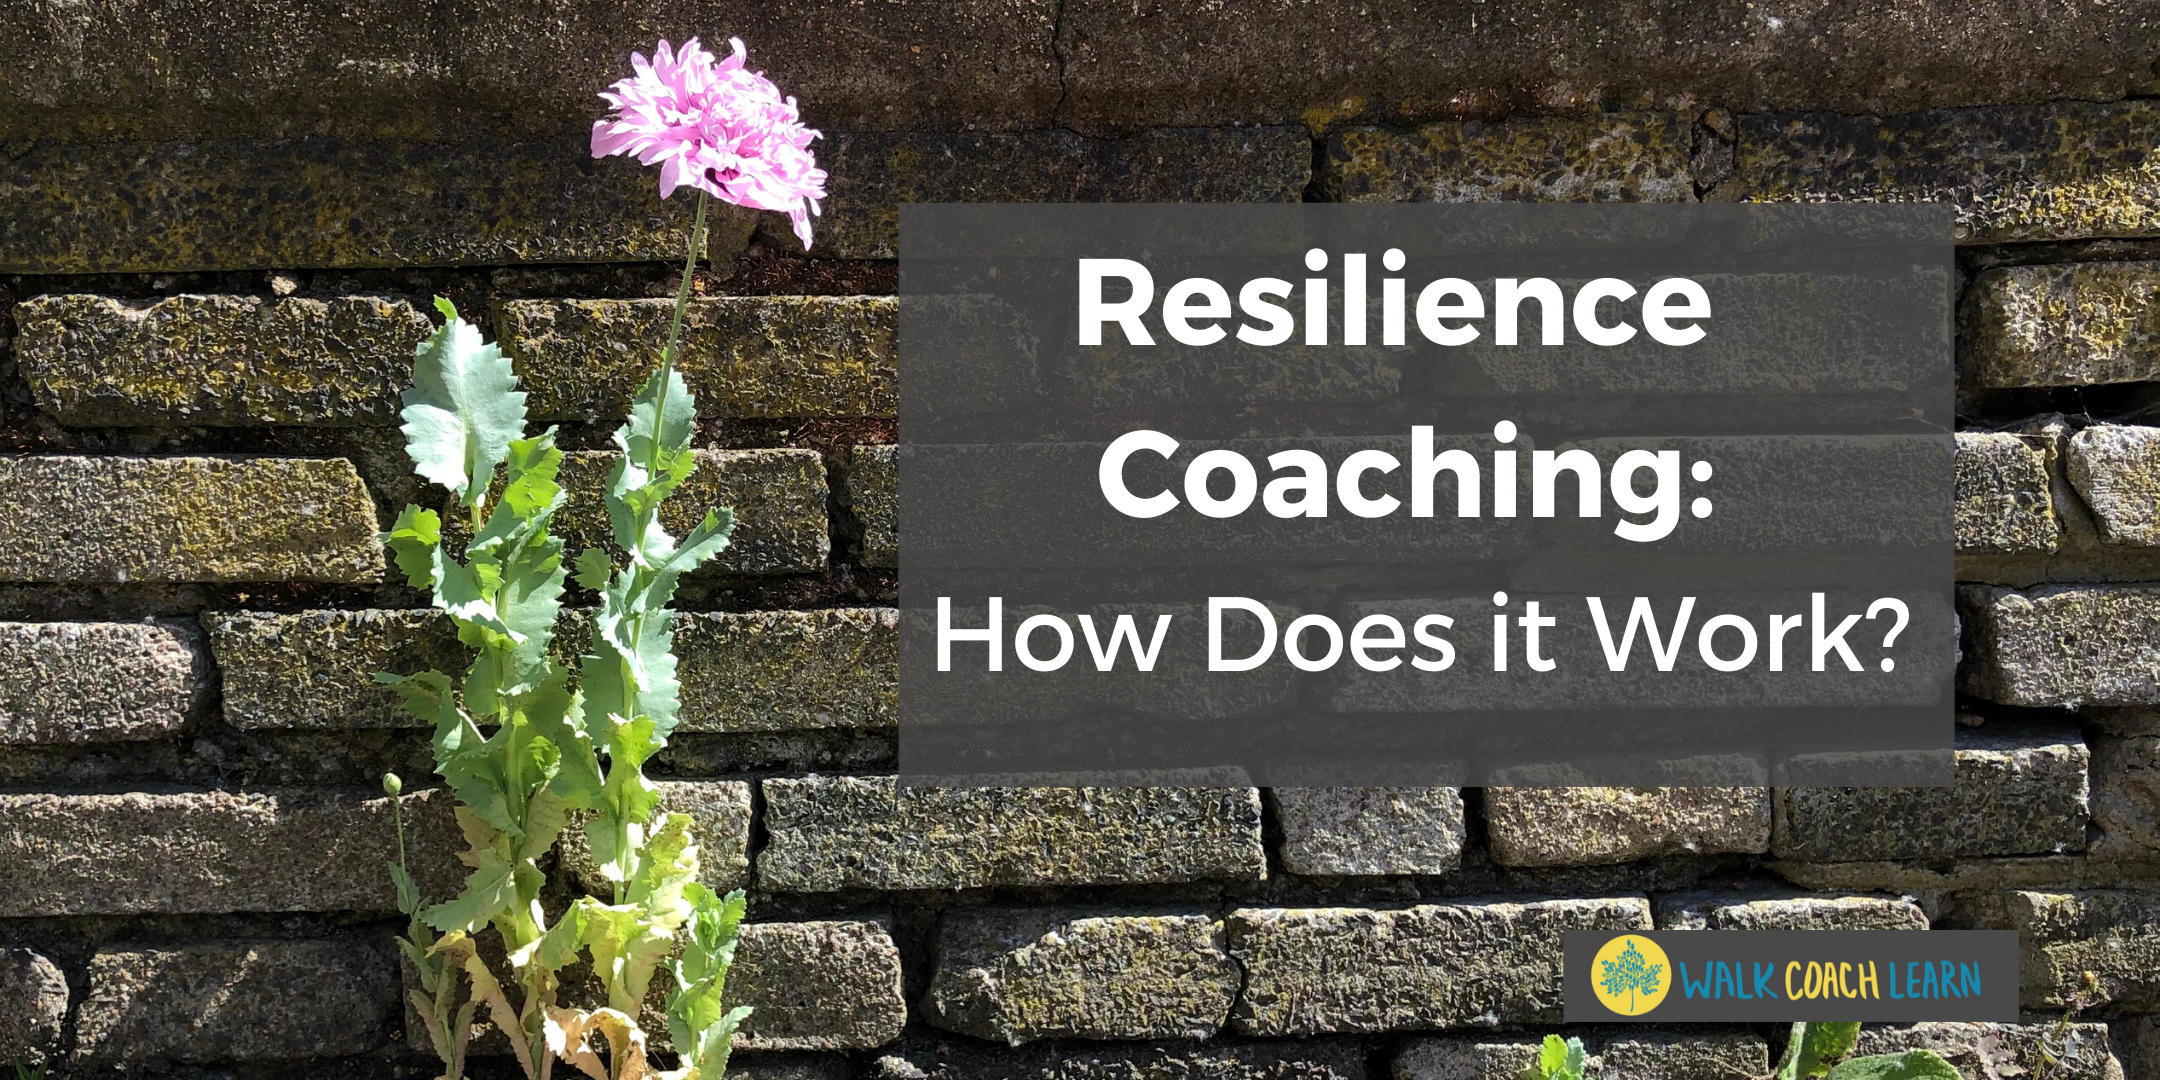 Resilience Coaching: How Does it Work?